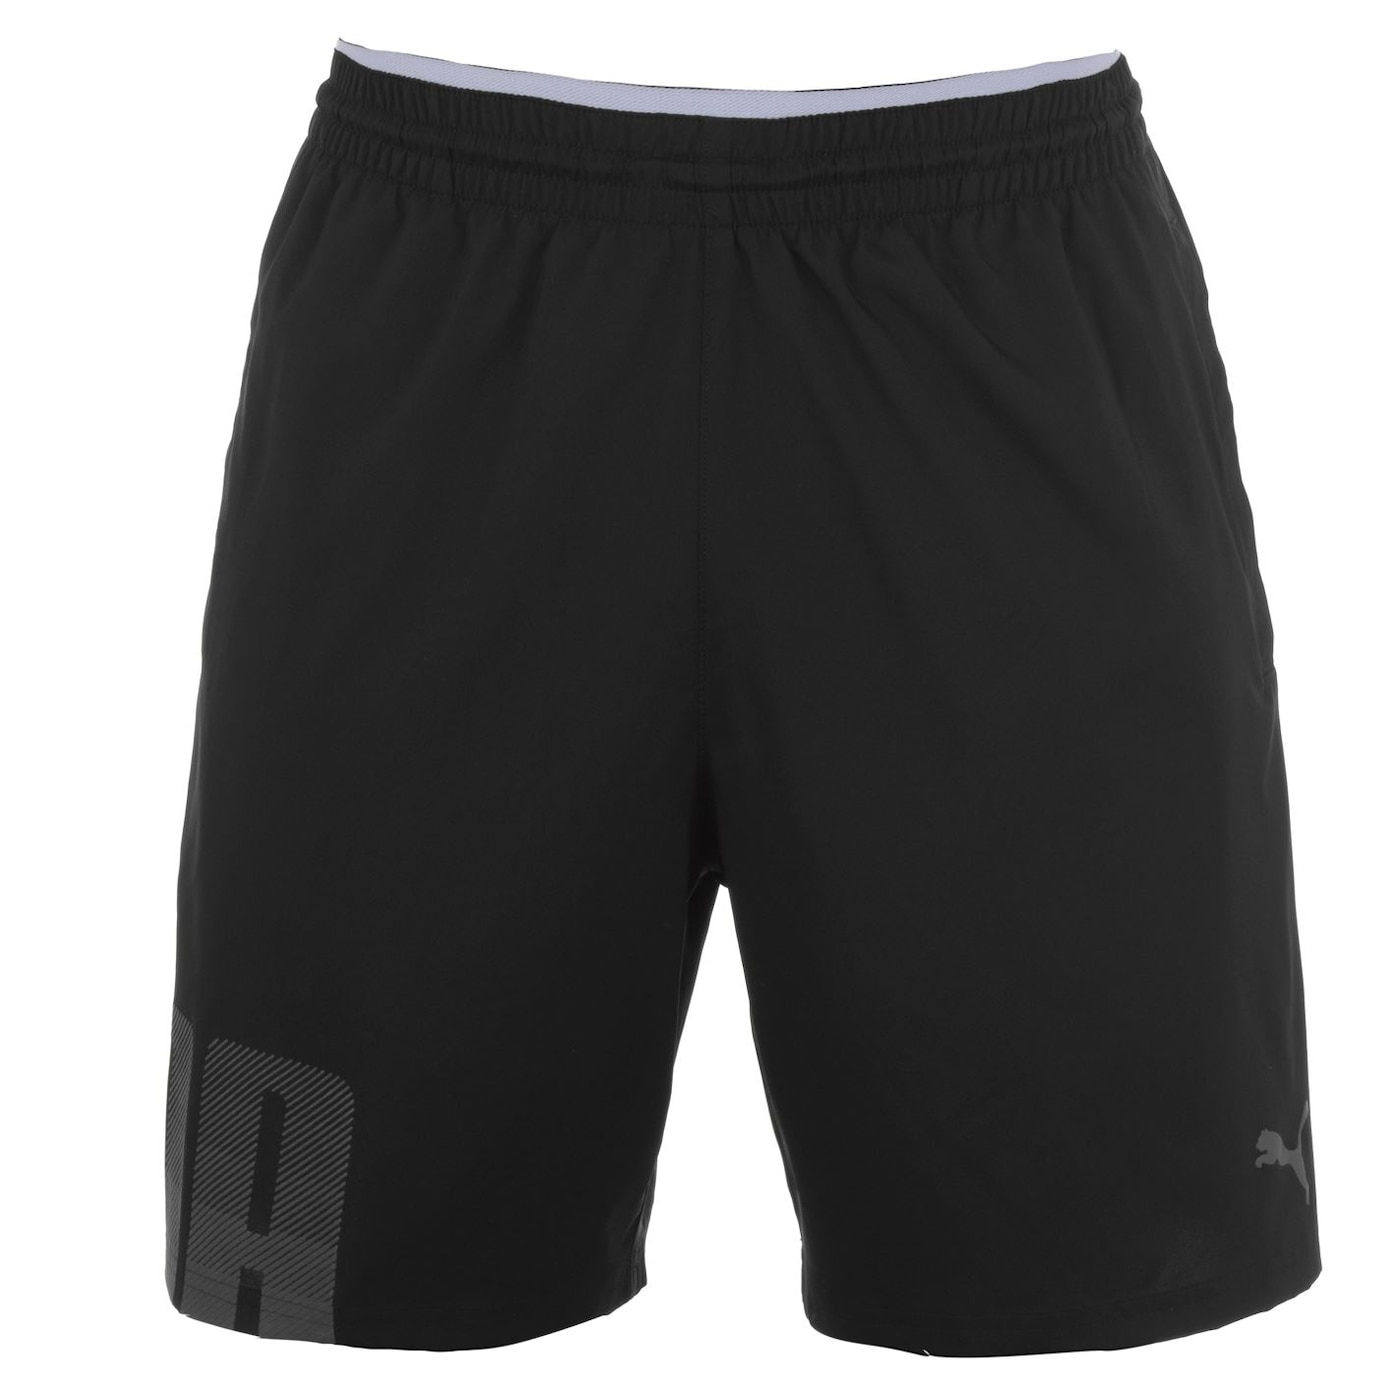 Puma Collective Hand Dry Woven Shorts Mens